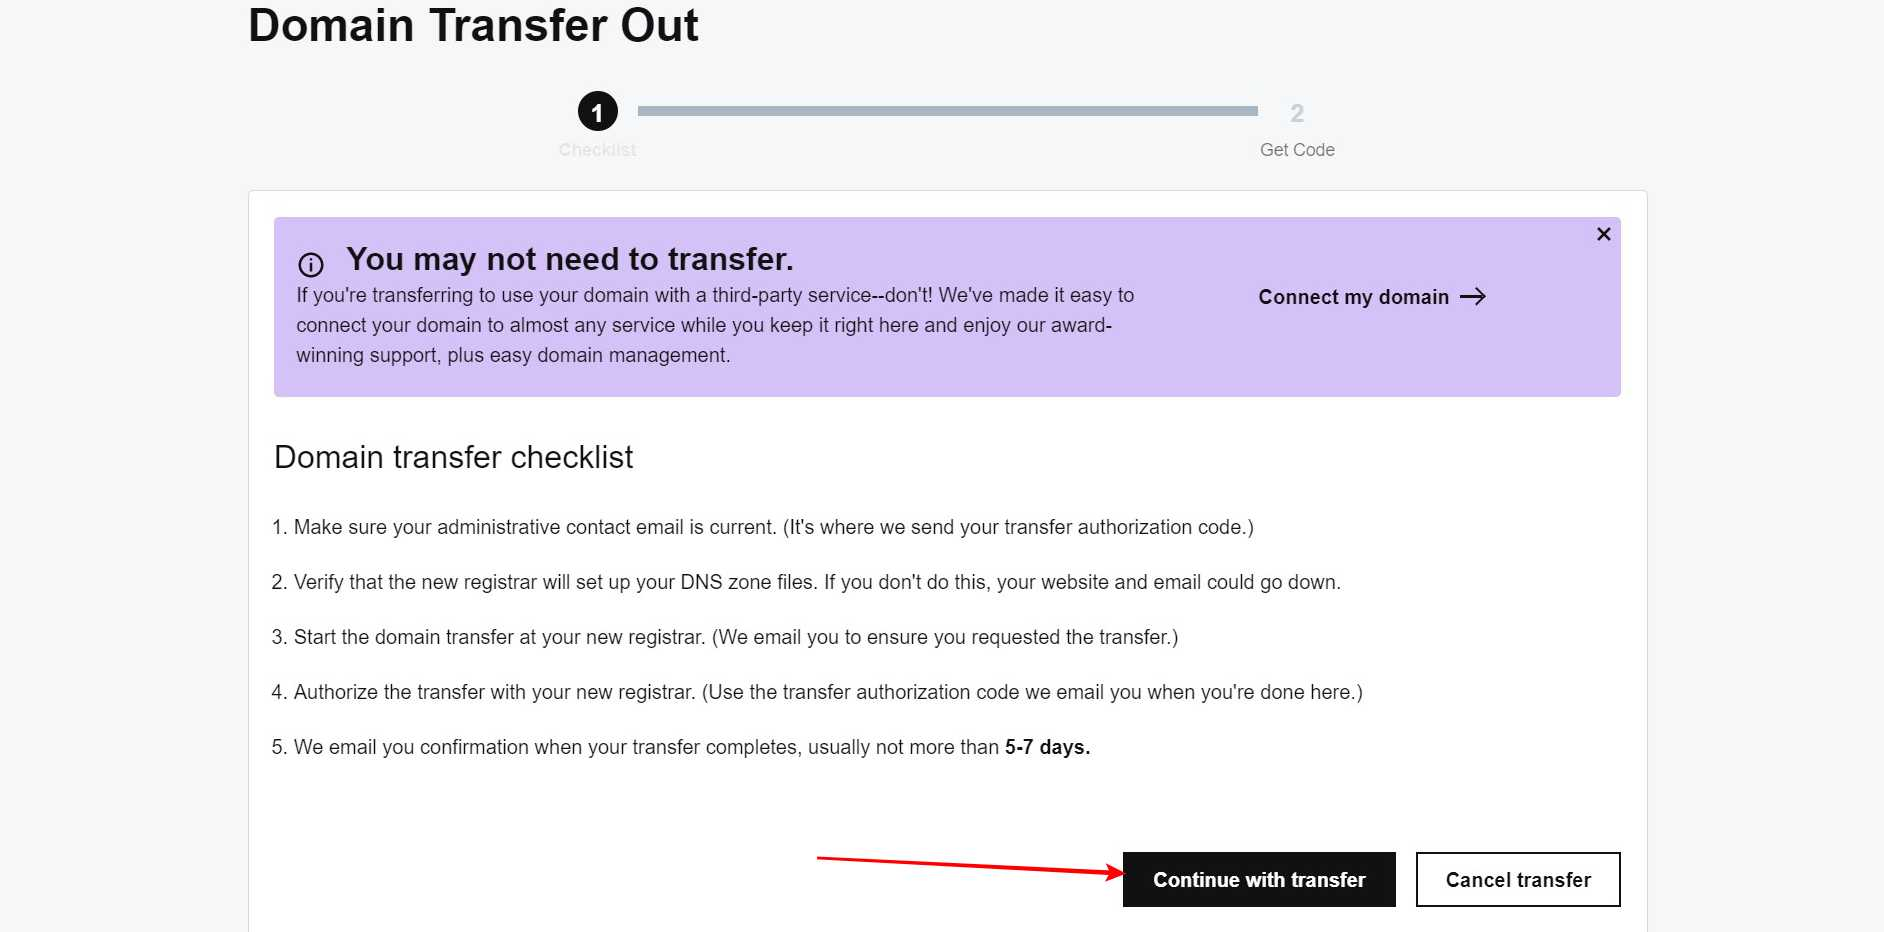 Continue with transfer